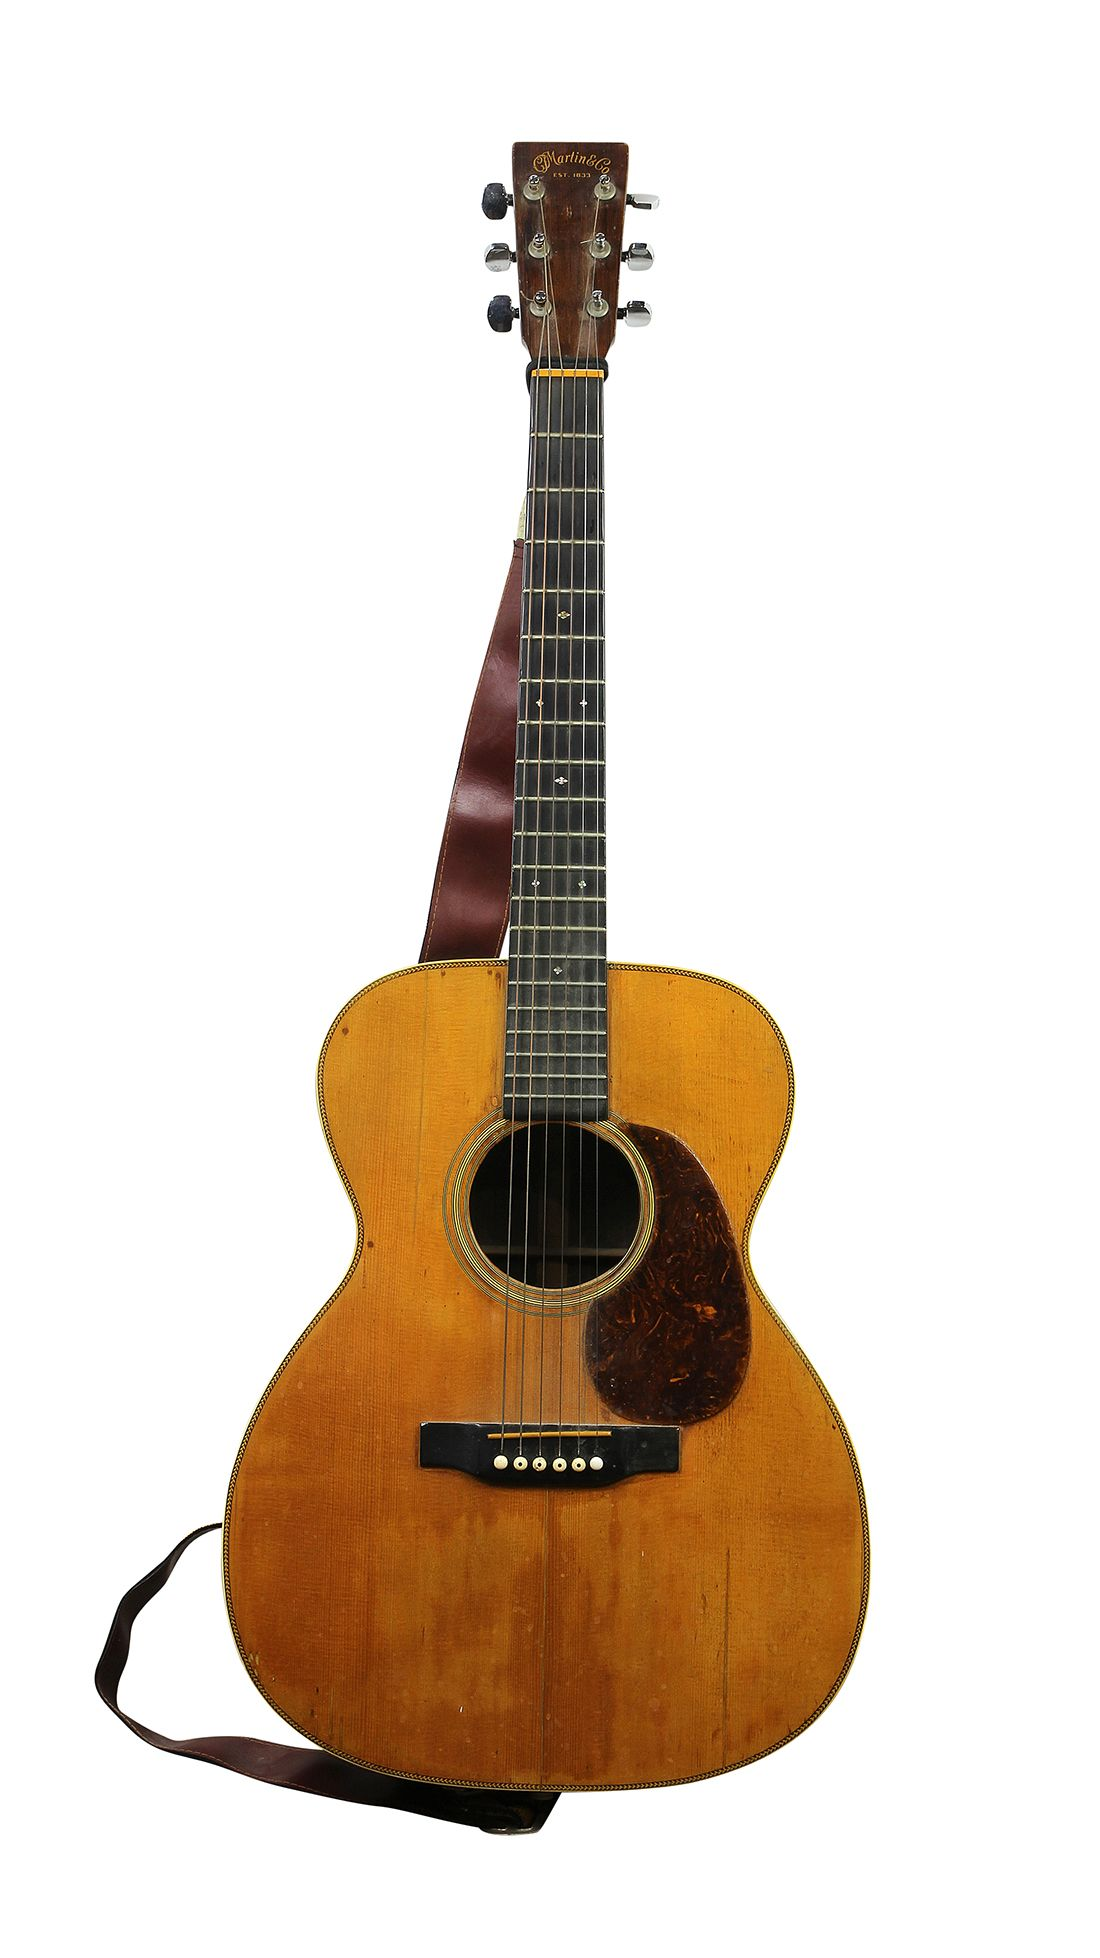 1939 Cf Martin And Co Nazareth Pa 000 28 Natural Acoustic Guitar Serial Number 72249 39 L Clars Auction Gallery Guitar Acoustic Guitar Acoustic